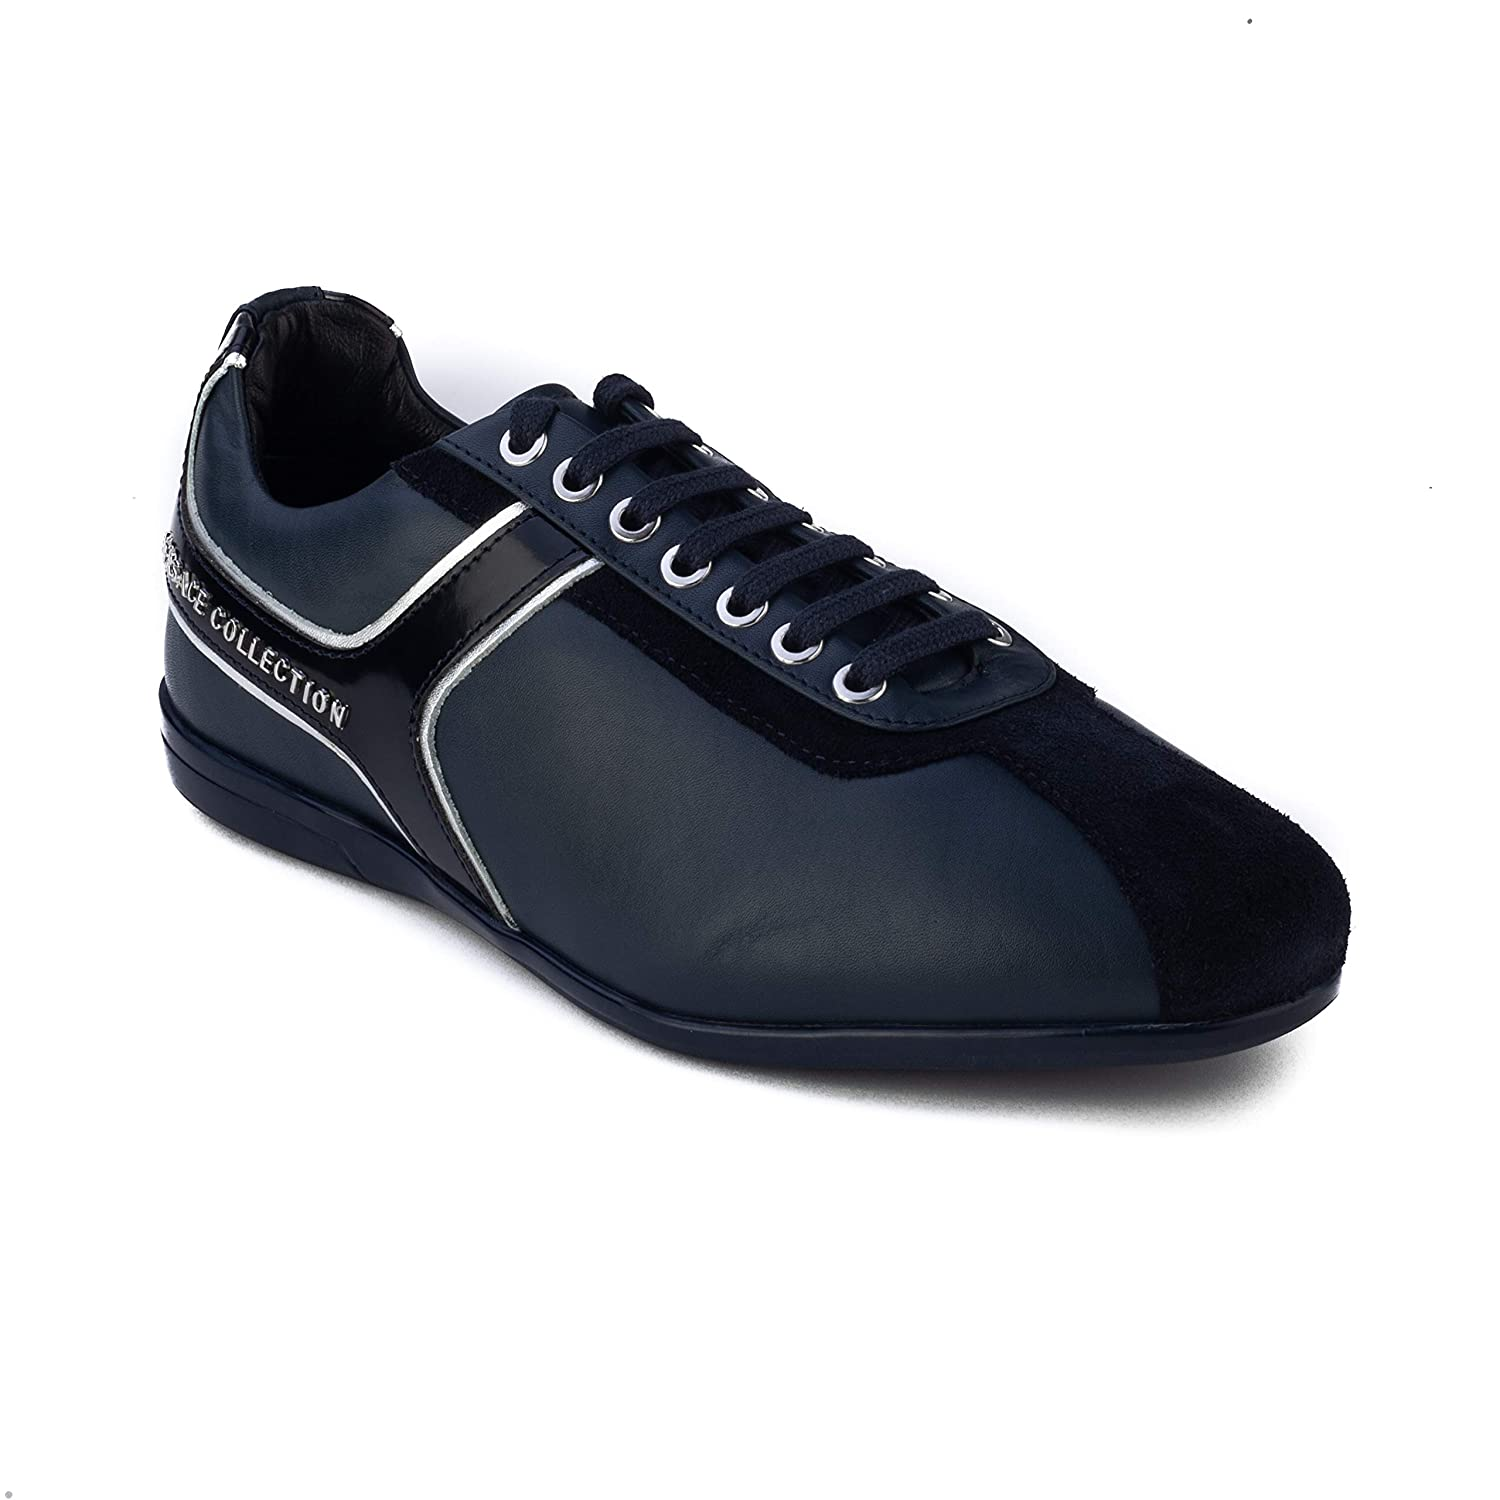 Versace Collection Mens Leather Low Top Sneaker Shoes Navy Blue Silver